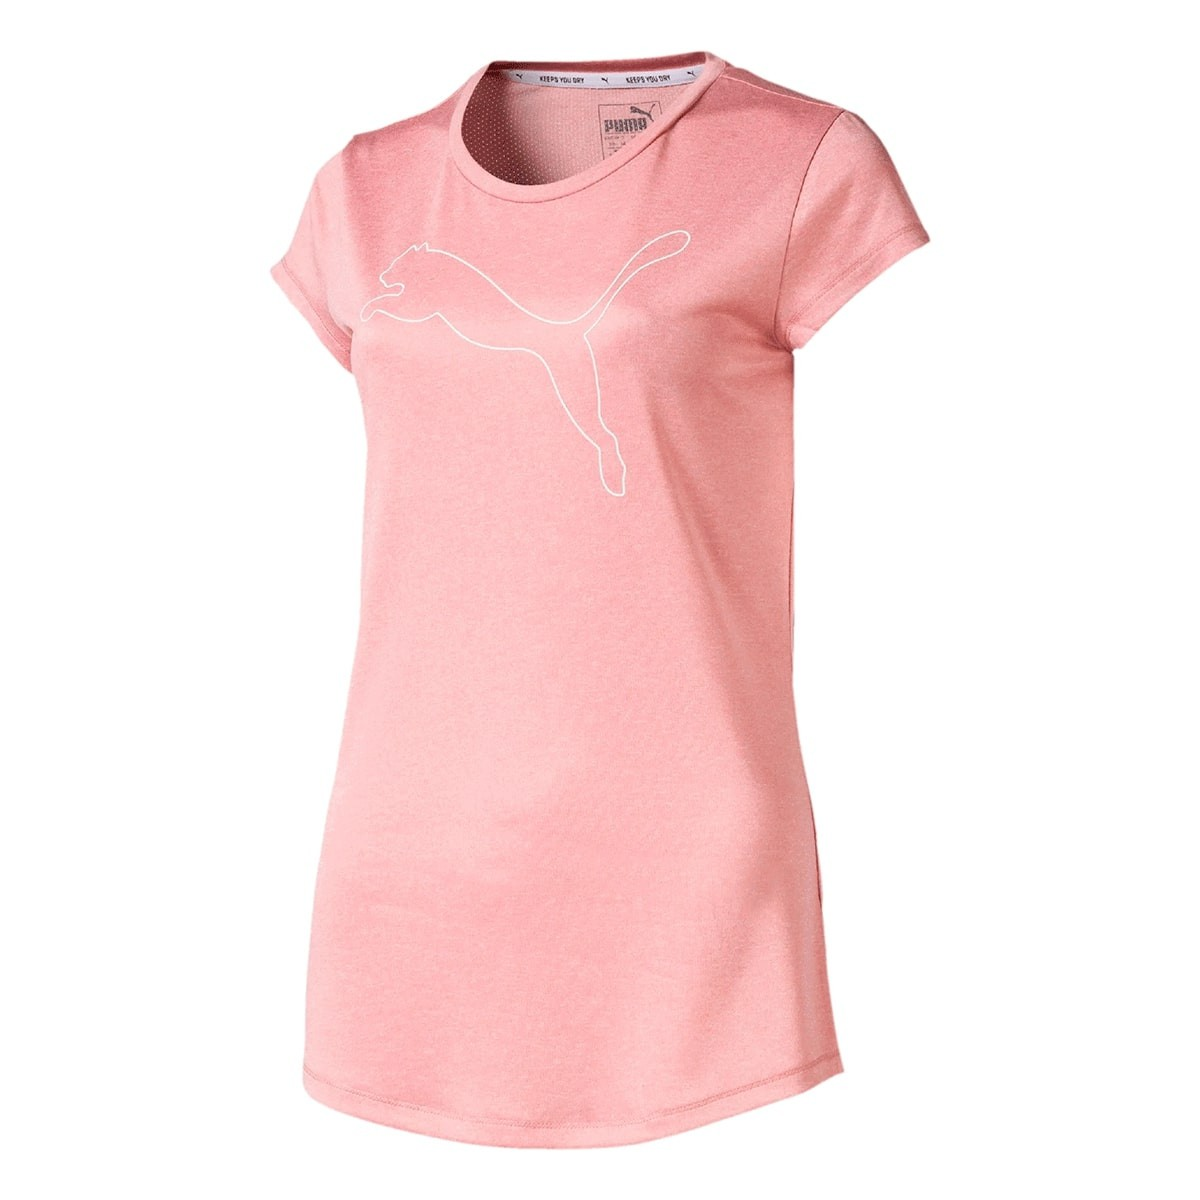 Camiseta Puma Active Heather Tee Feminina Rosa